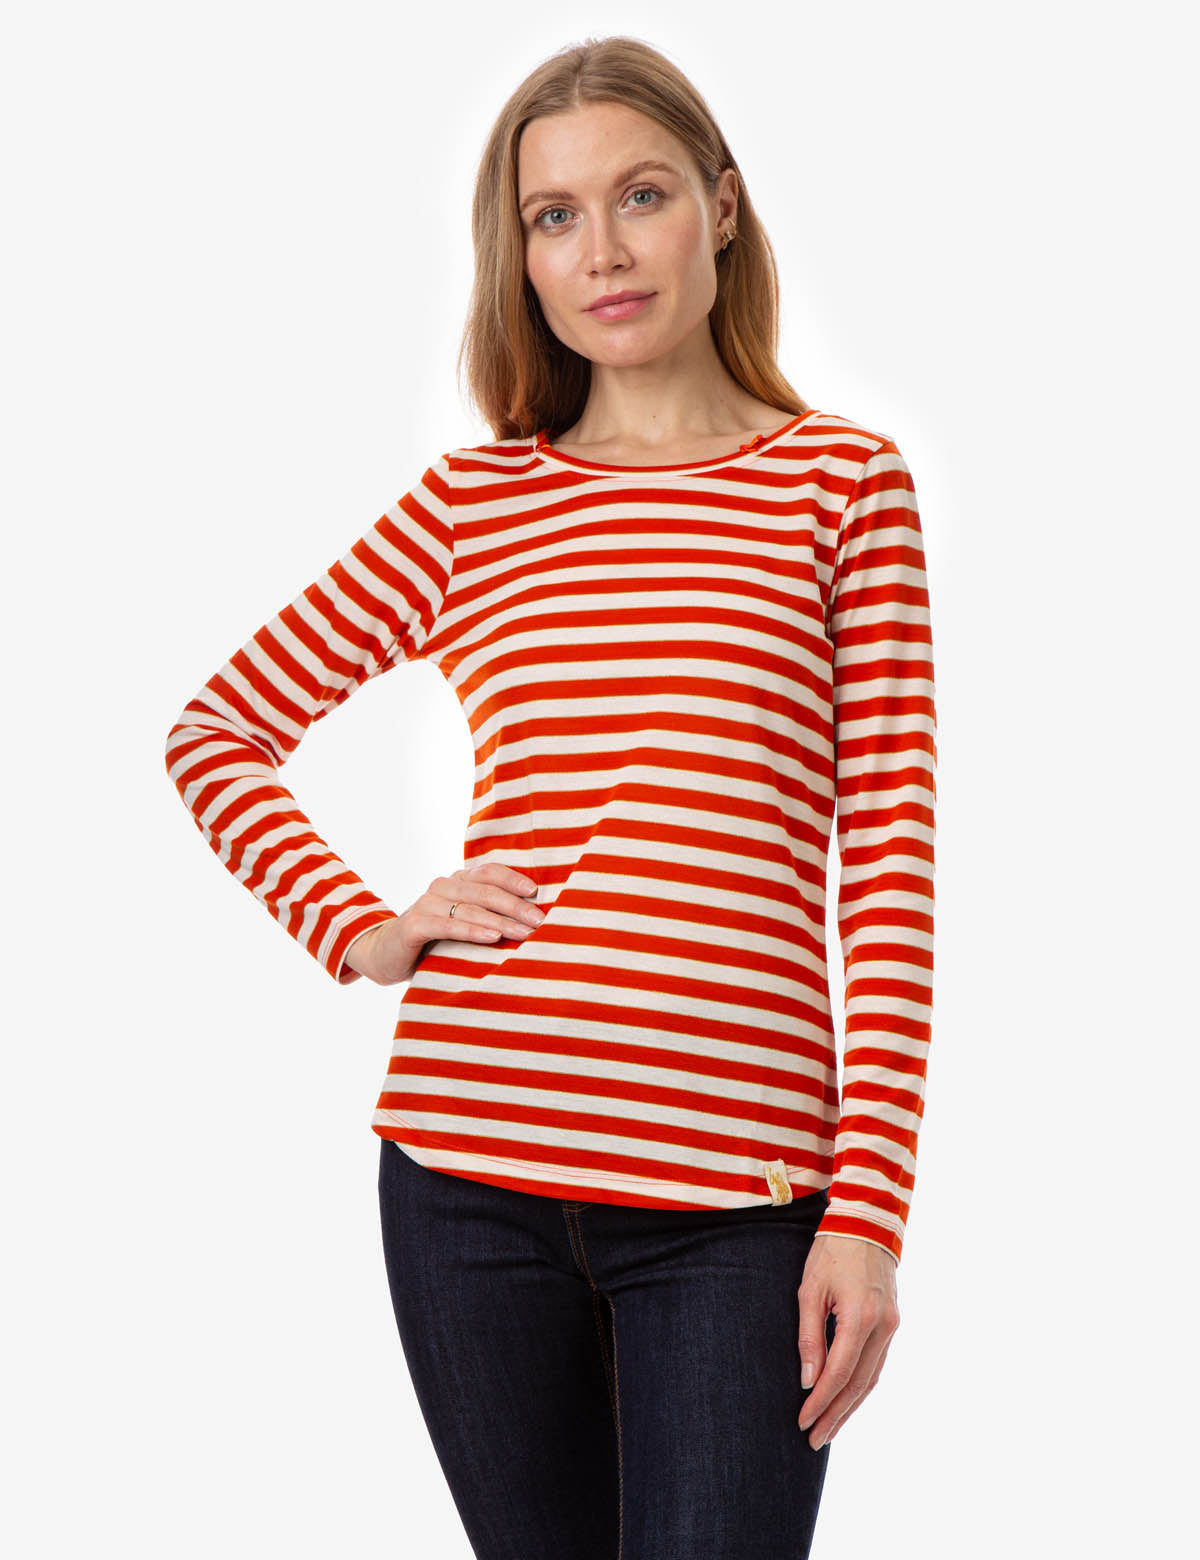 LUREX SHADOW STRIPE LONG SLEEVE T-SHIRT - U.S. Polo Assn.